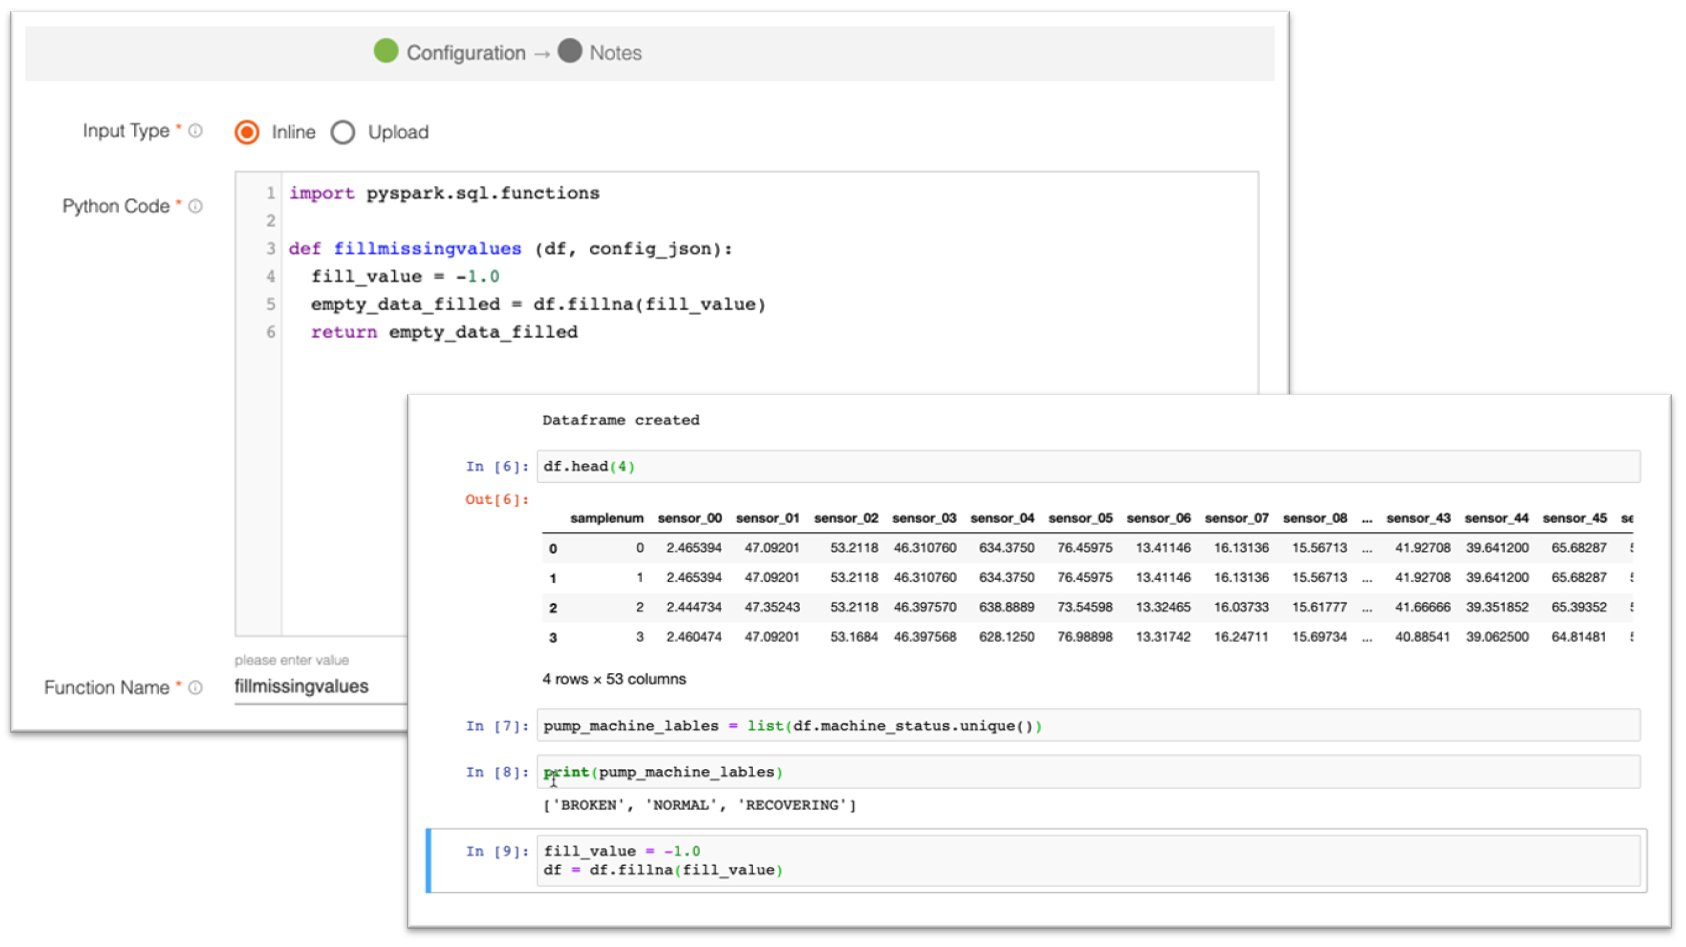 Screen captures from FactoryTalk DataFlowML software that shows programming code being used in Python and Jupyter platforms